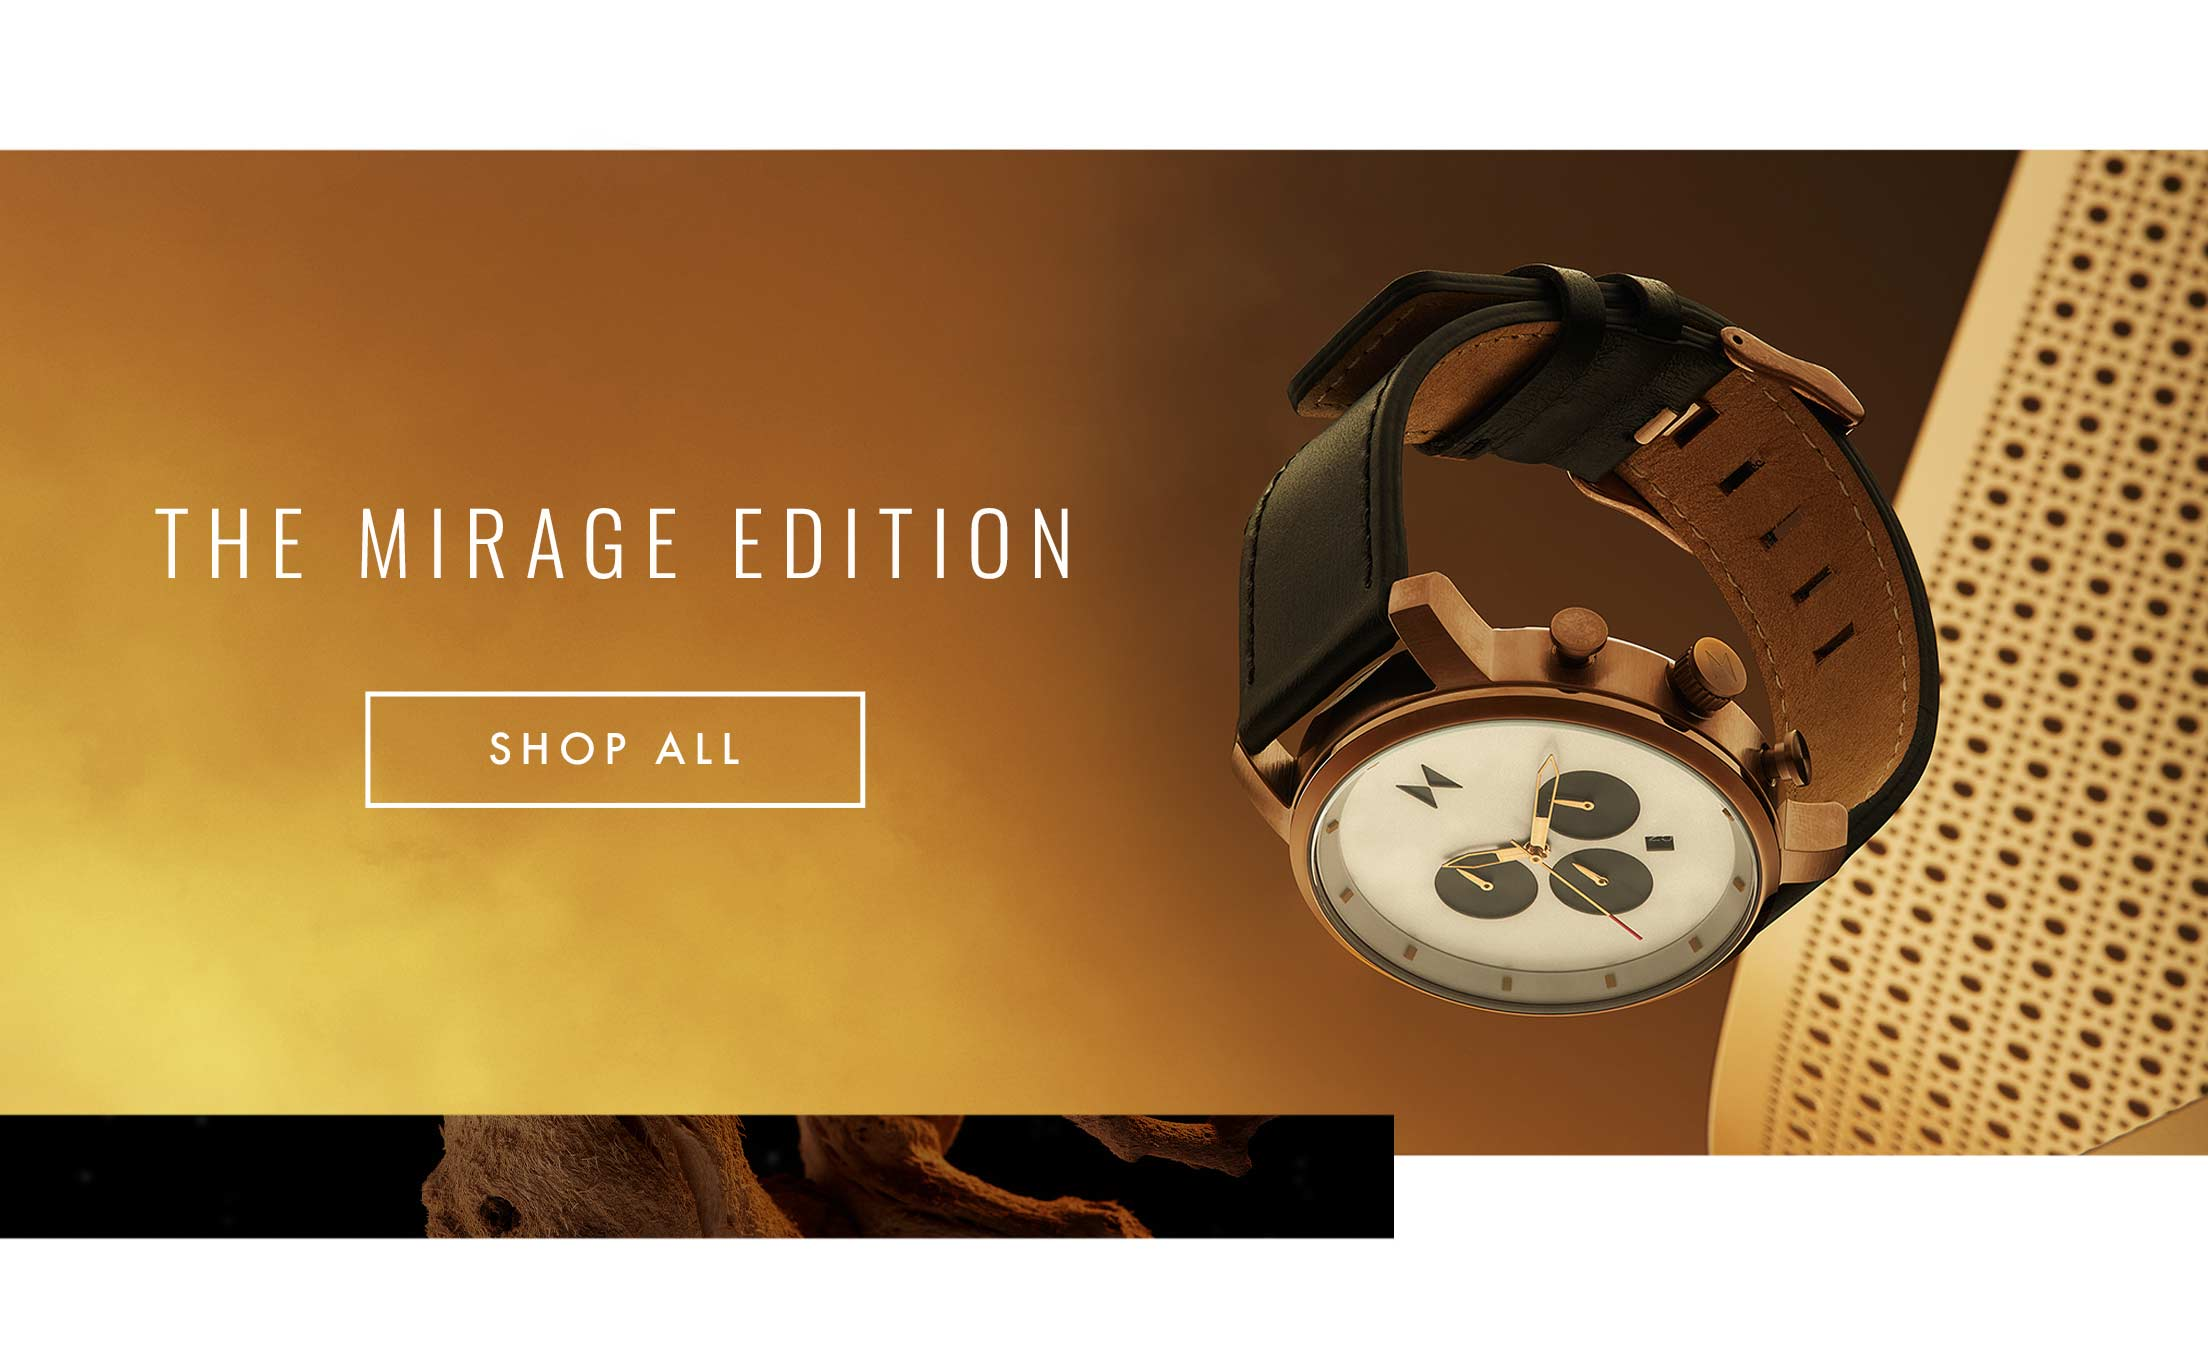 Mirage edition: Shop All